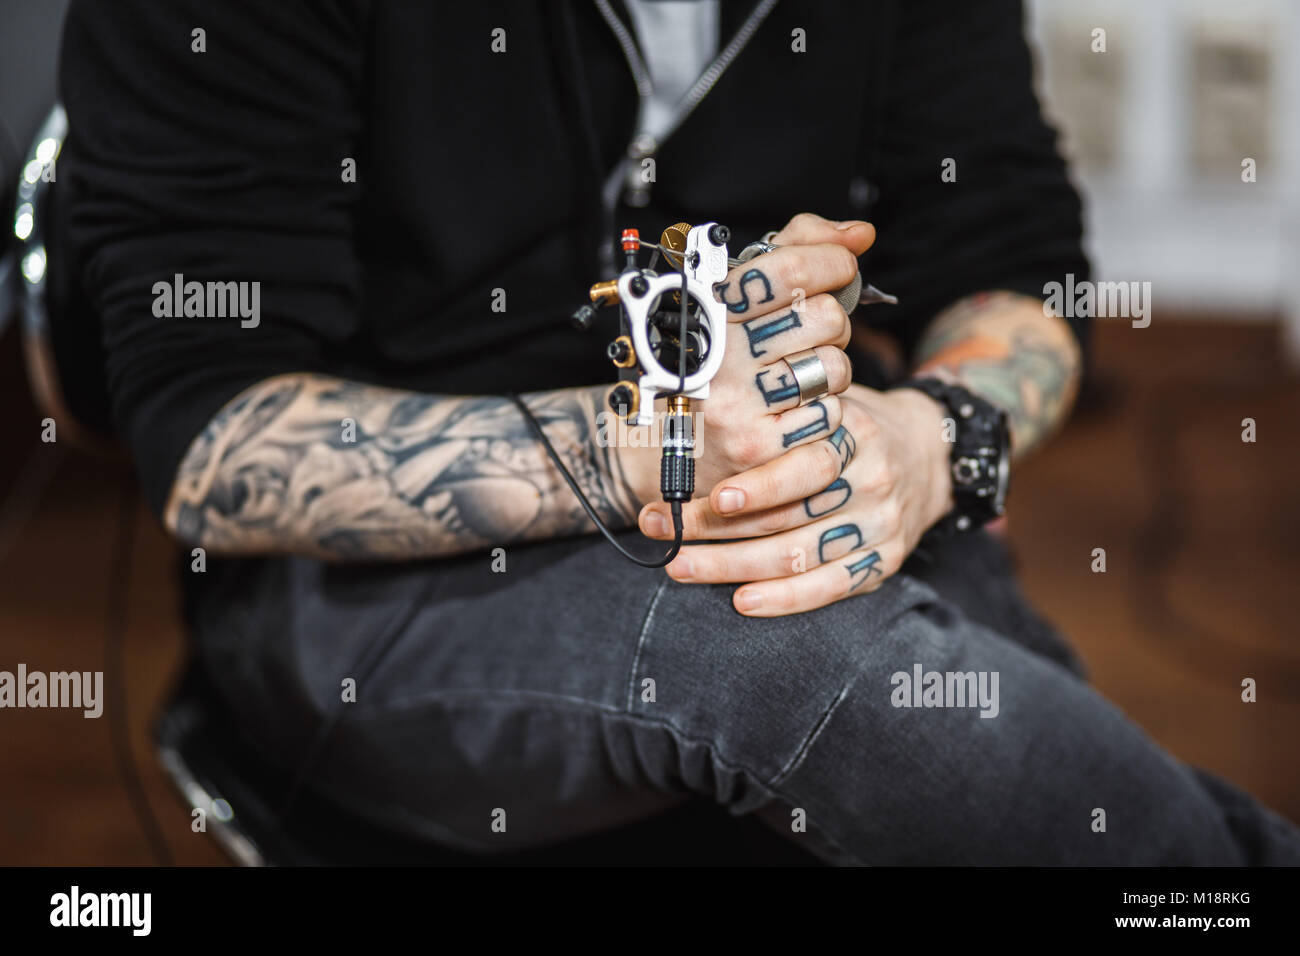 Man tattoo artist - Stock Image